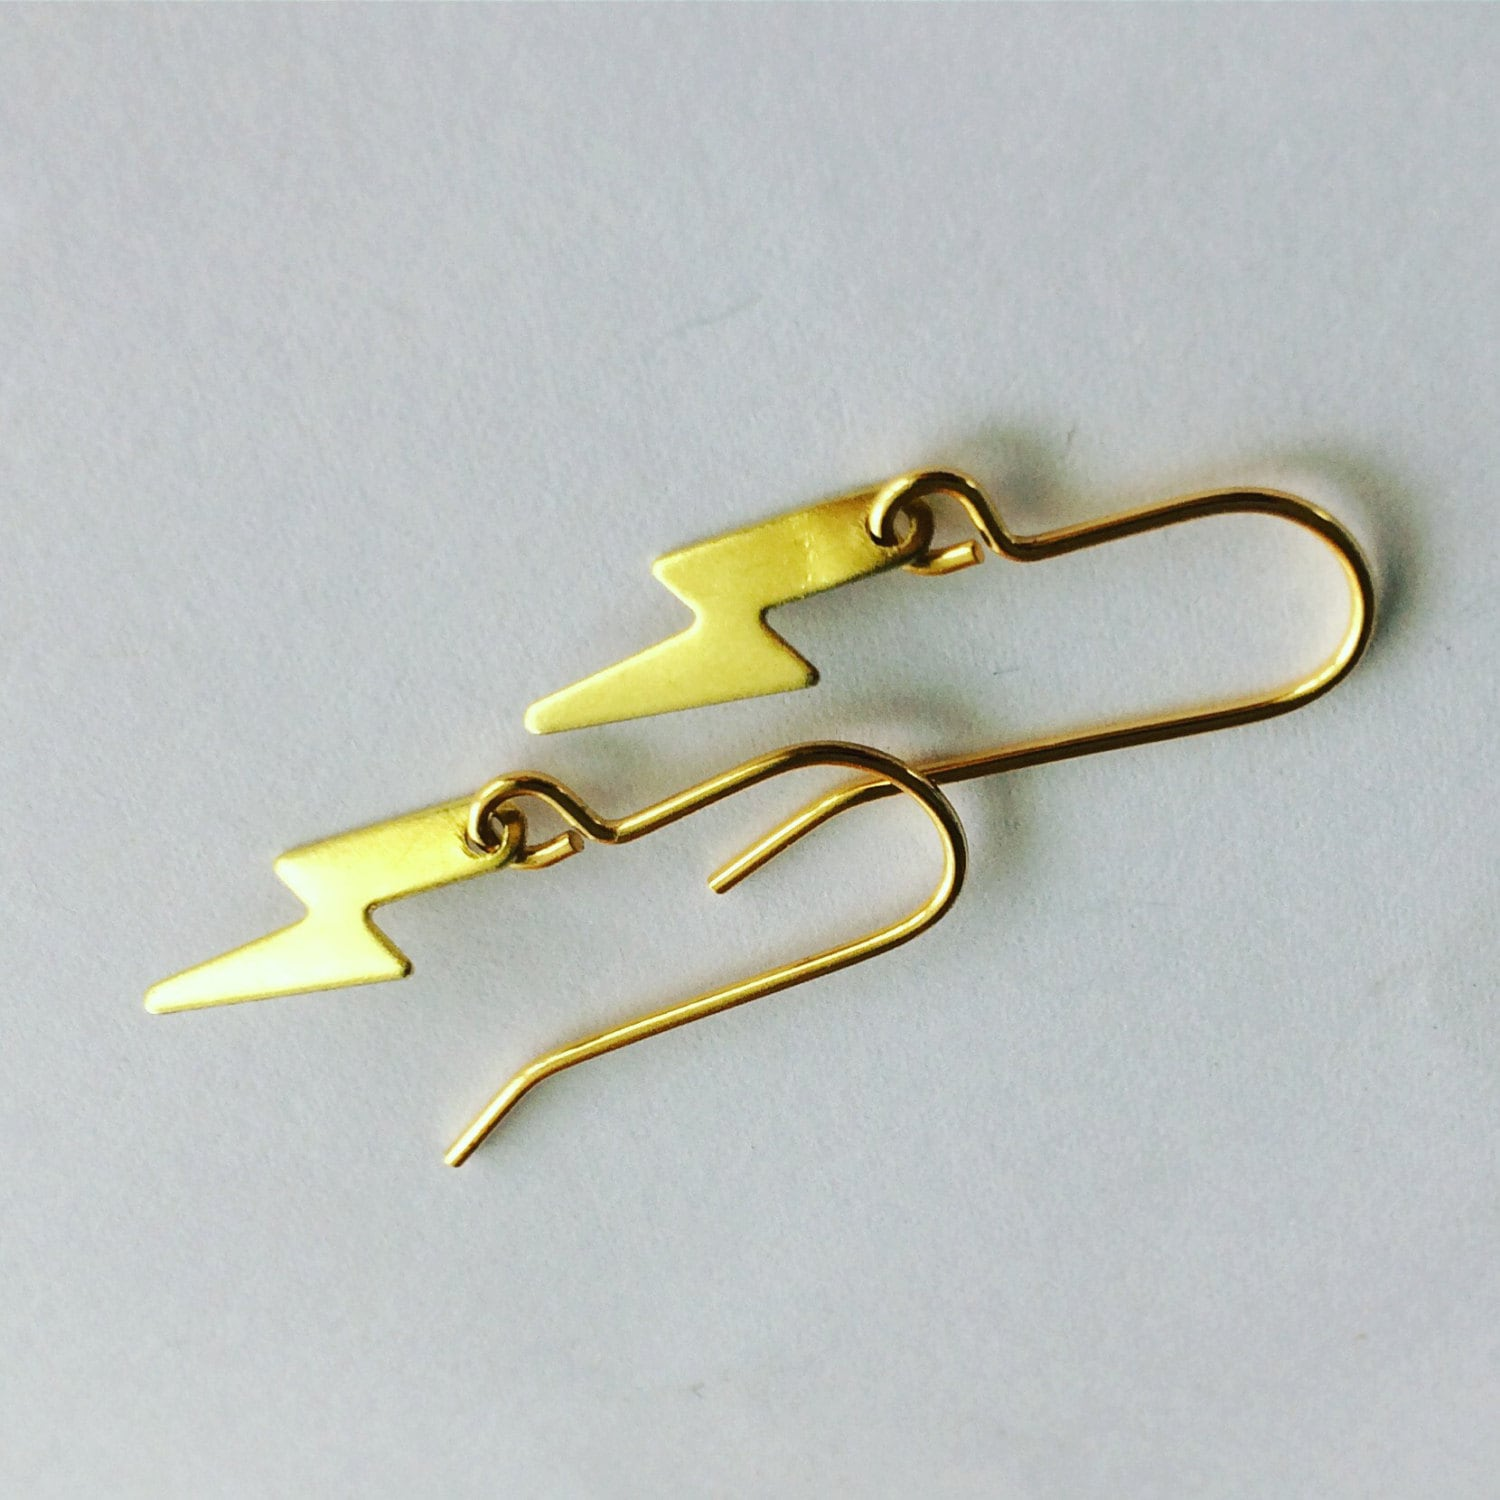 Golden,Brass,Lightening,Bolts,David_Bowie_,brass_earrings_,Faye_wilson_,tiny_earrings_,zigzag_,lightening_bolt_,lightening_earrings_,Ziggy_stardust_,Bowie_earrings_,modern_earrings_,festival,brass_earrings,drop_earrings